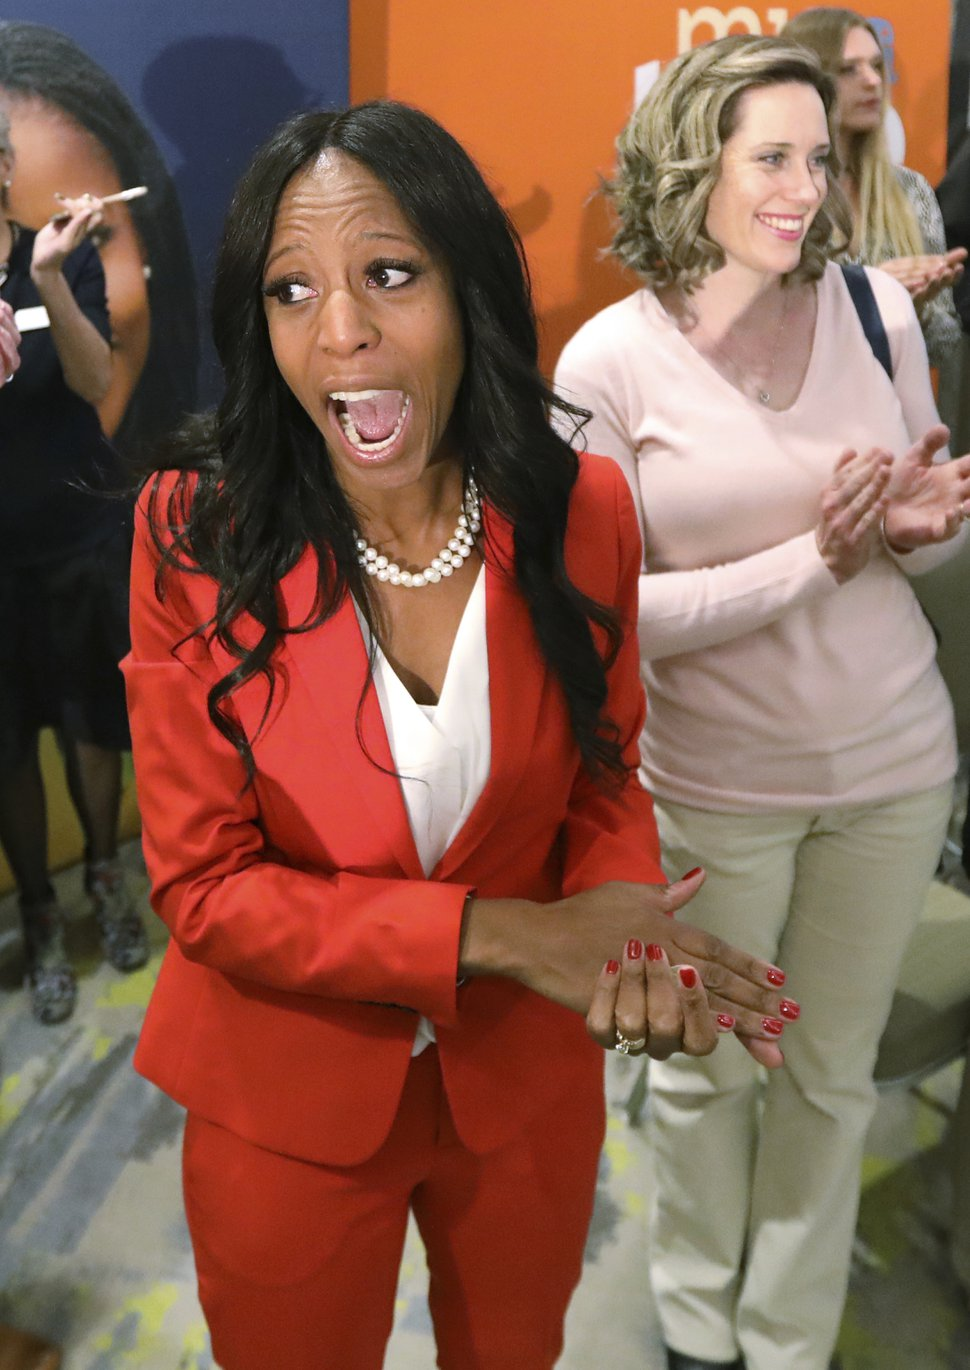 Rep. Mia Love, R-Utah, greets supporters during an election night party Tuesday Nov. 6, 2018, in Lehi, Utah. Love is facing Democrat Ben McAdams in the state's 4th congressional district. (AP Photo/Rick Bowmer)